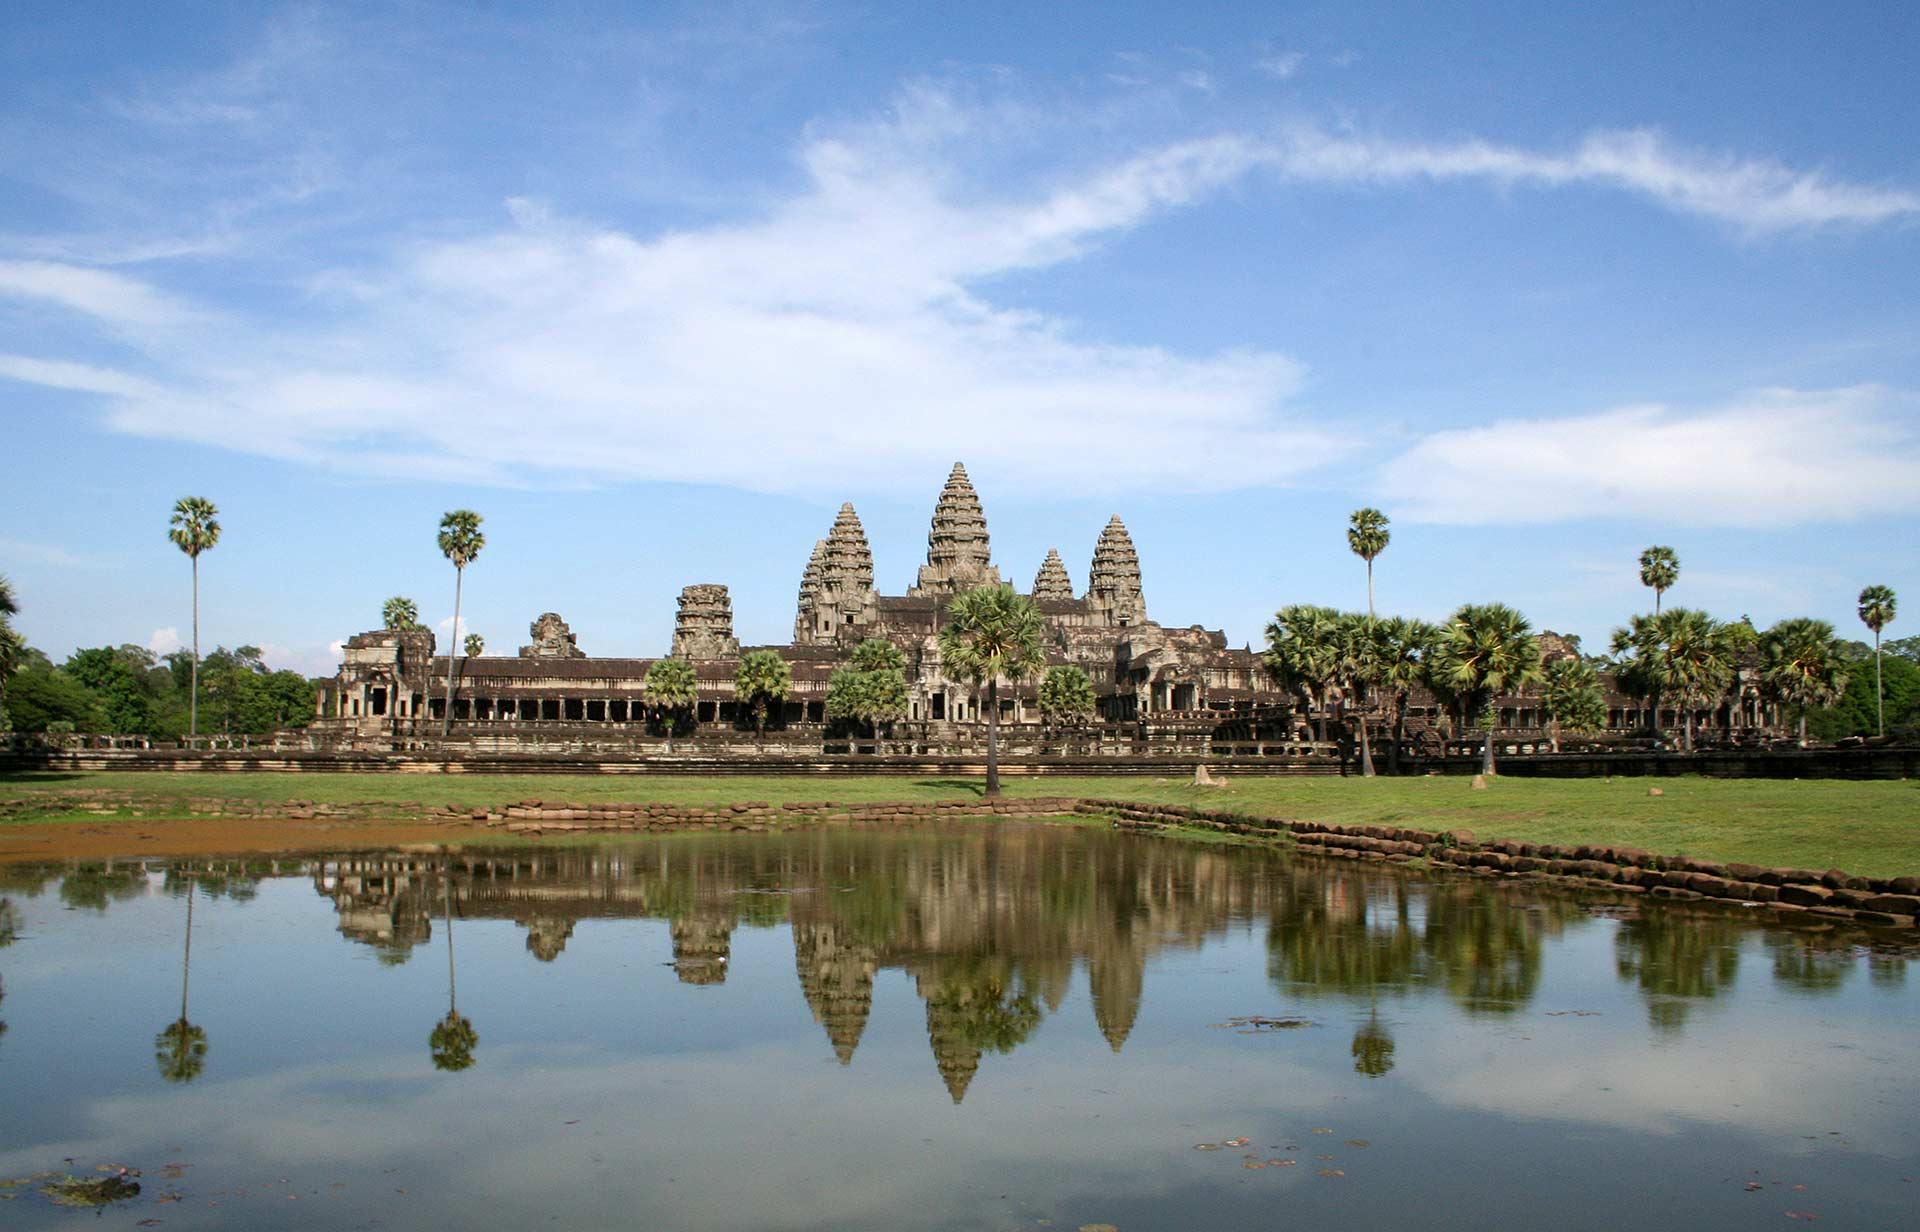 cambodia tourism revenue Tourist-free Angkor Wat in 2006 coronovirus travel advice